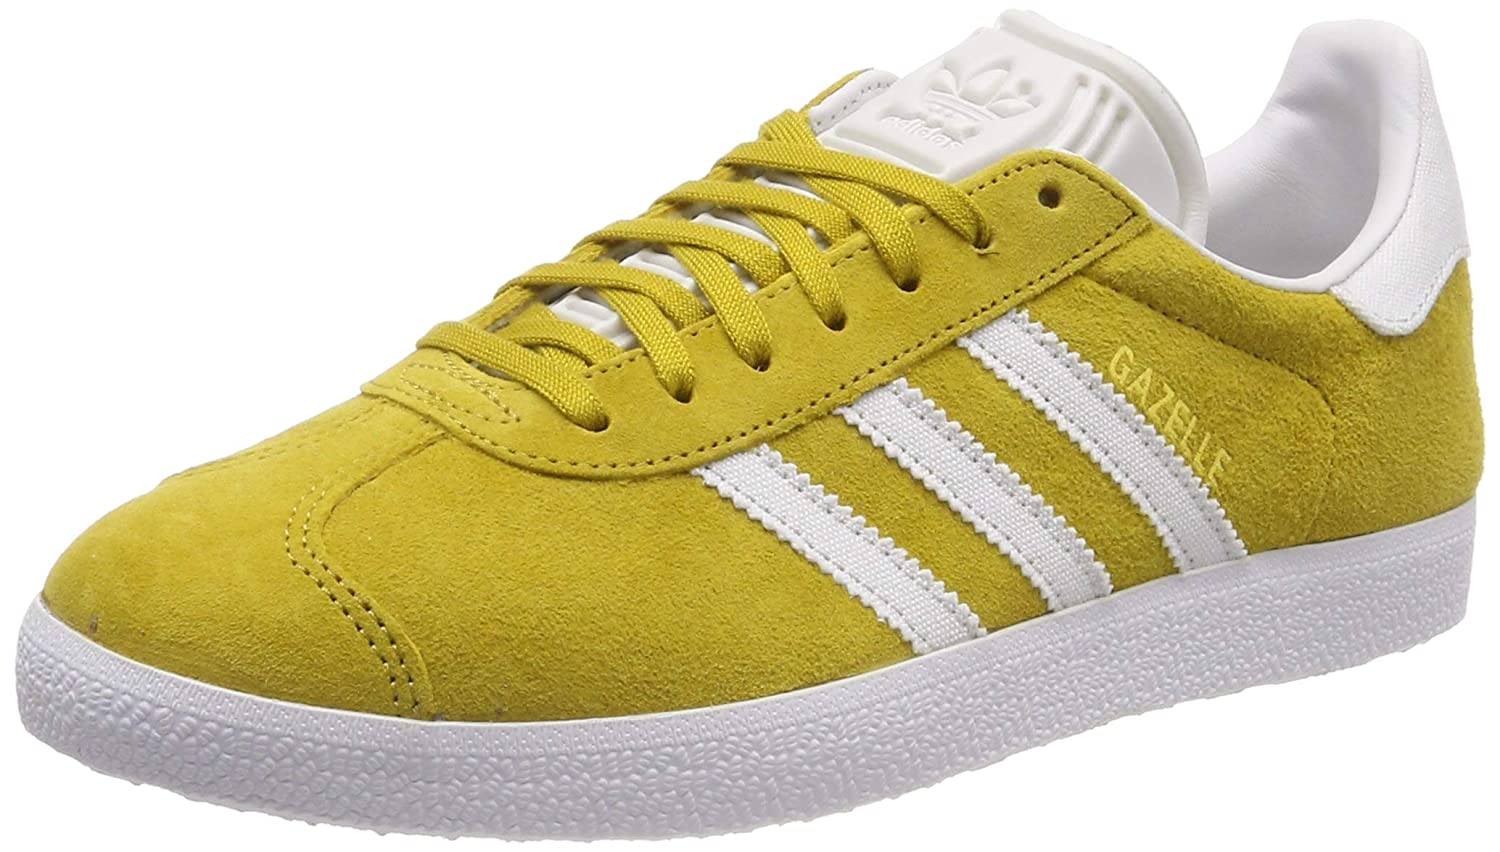 Yellow (Raw Ochre Crystal White Ftwr White Raw Ochre Crystal White Ftwr White) adidas Men's Gazelle Gymnastics shoes